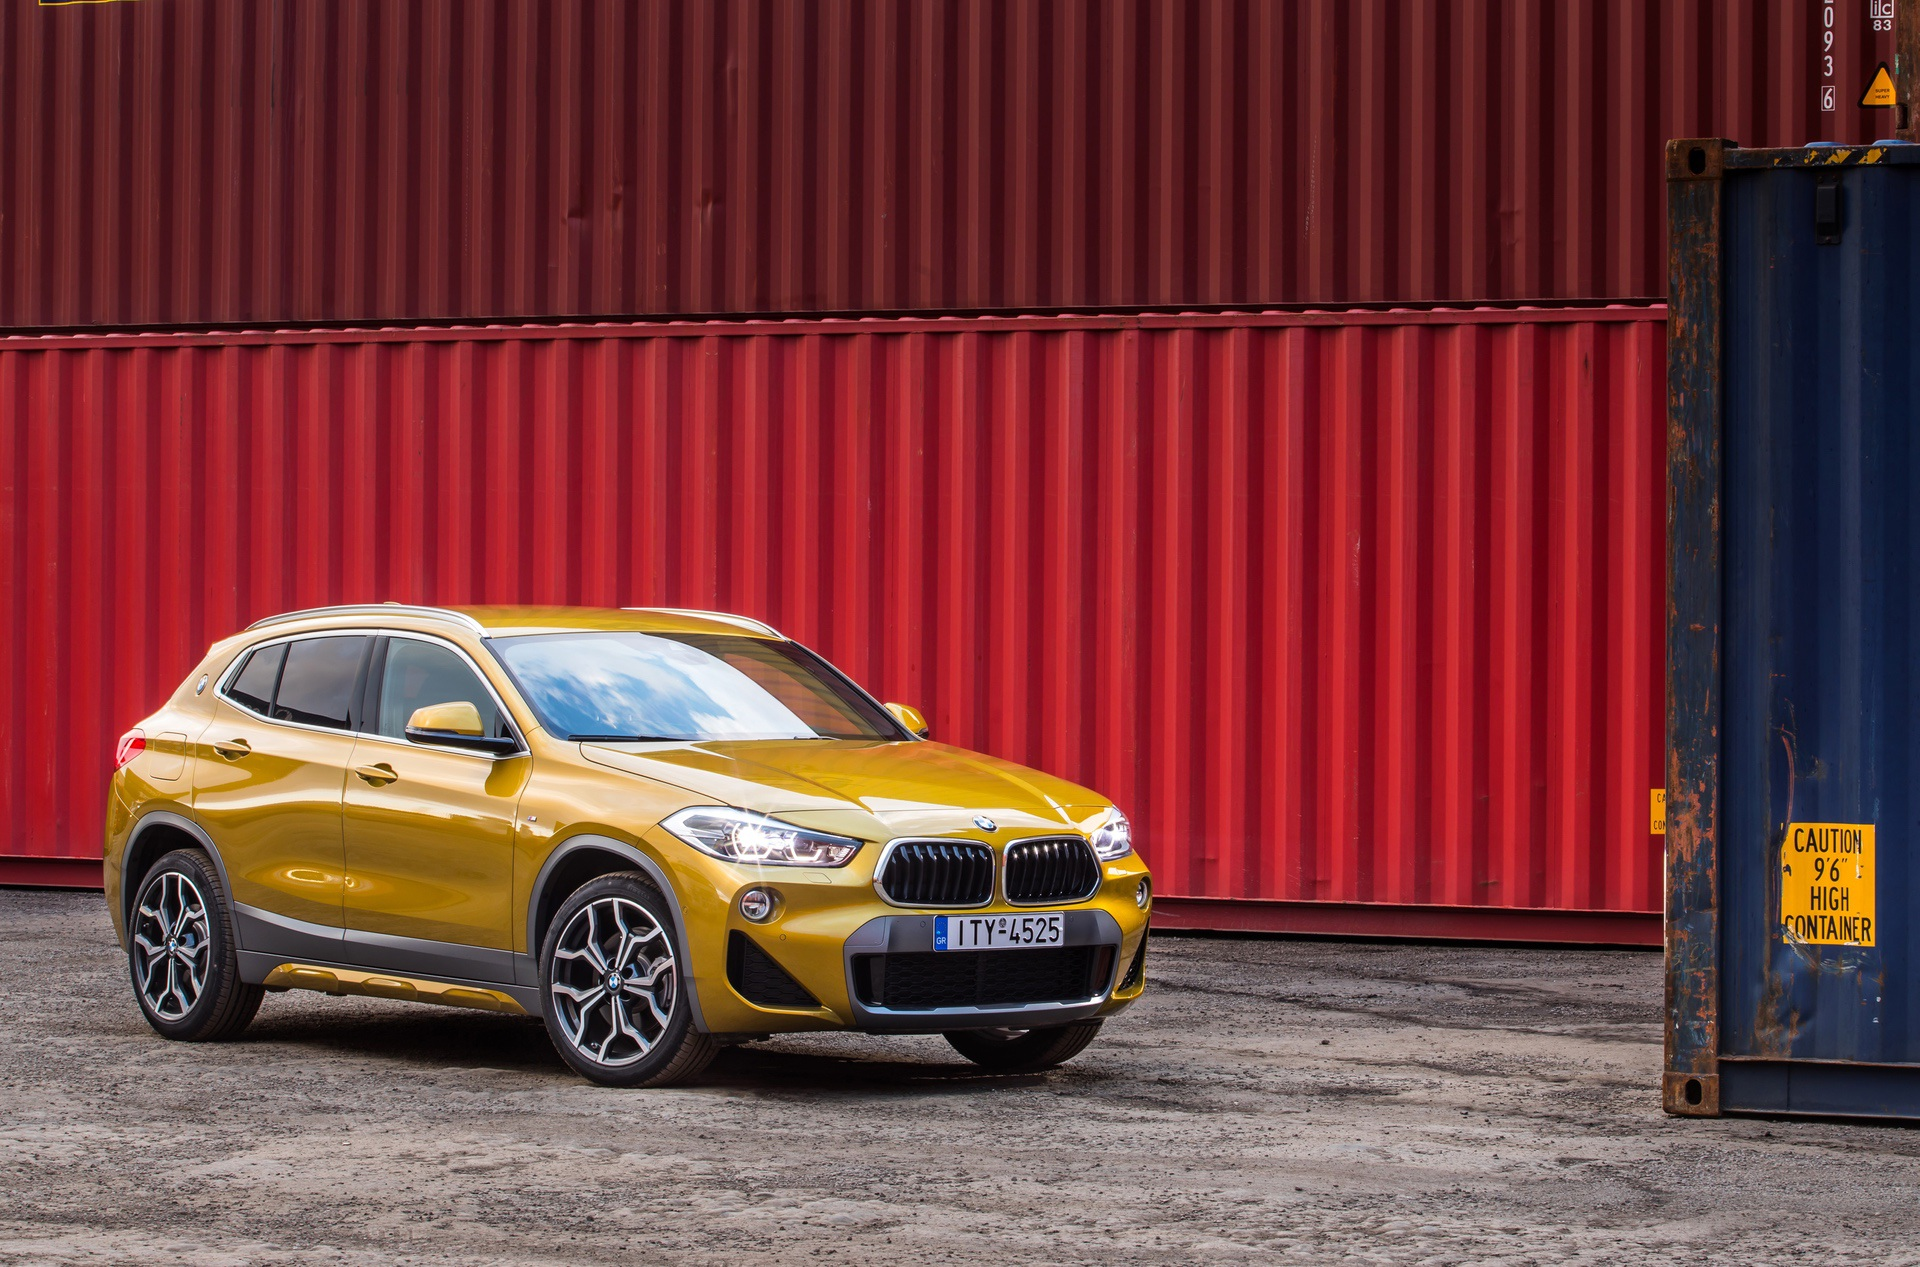 BMW_X2_Greek_presskit_0049